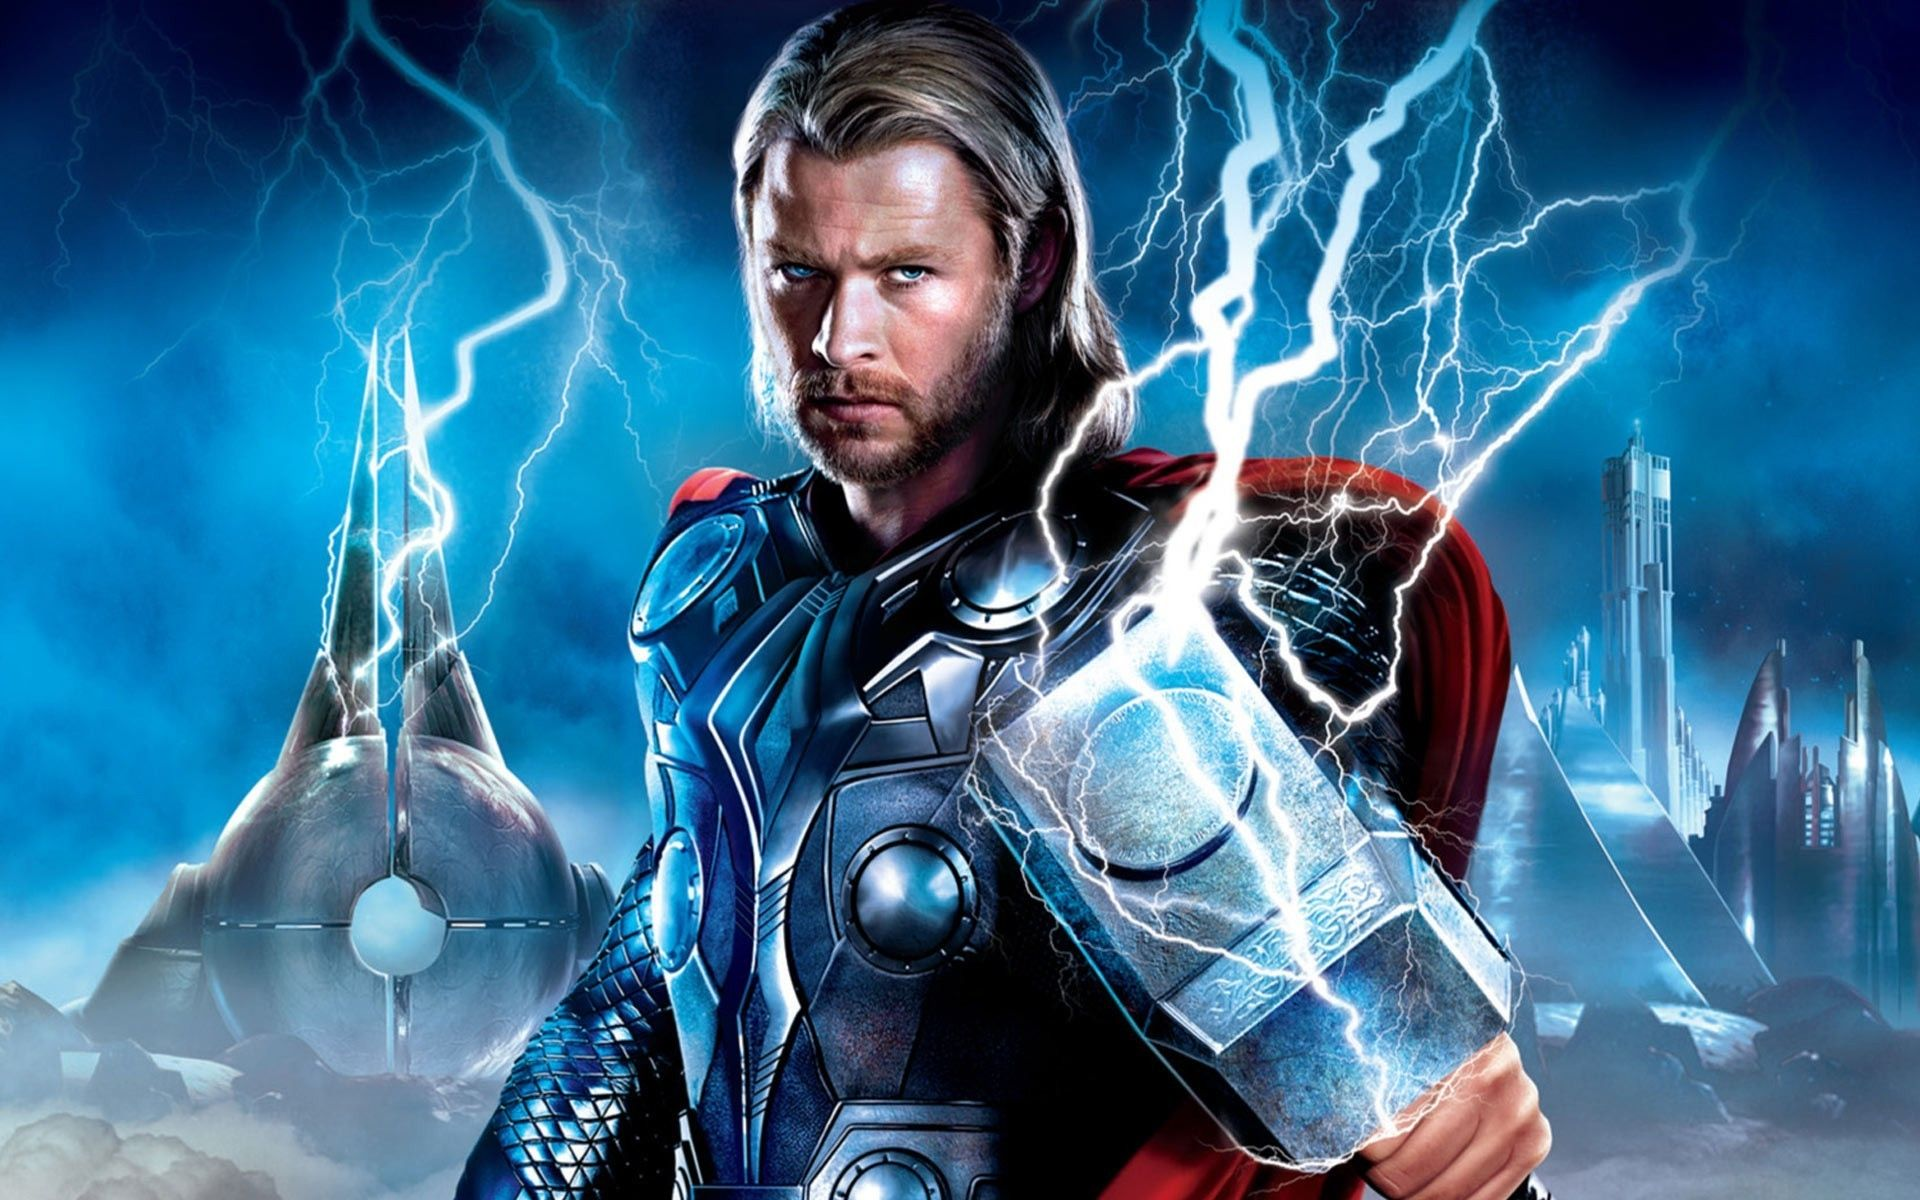 thor hd wallpapers for desktop download | chris hemsworth